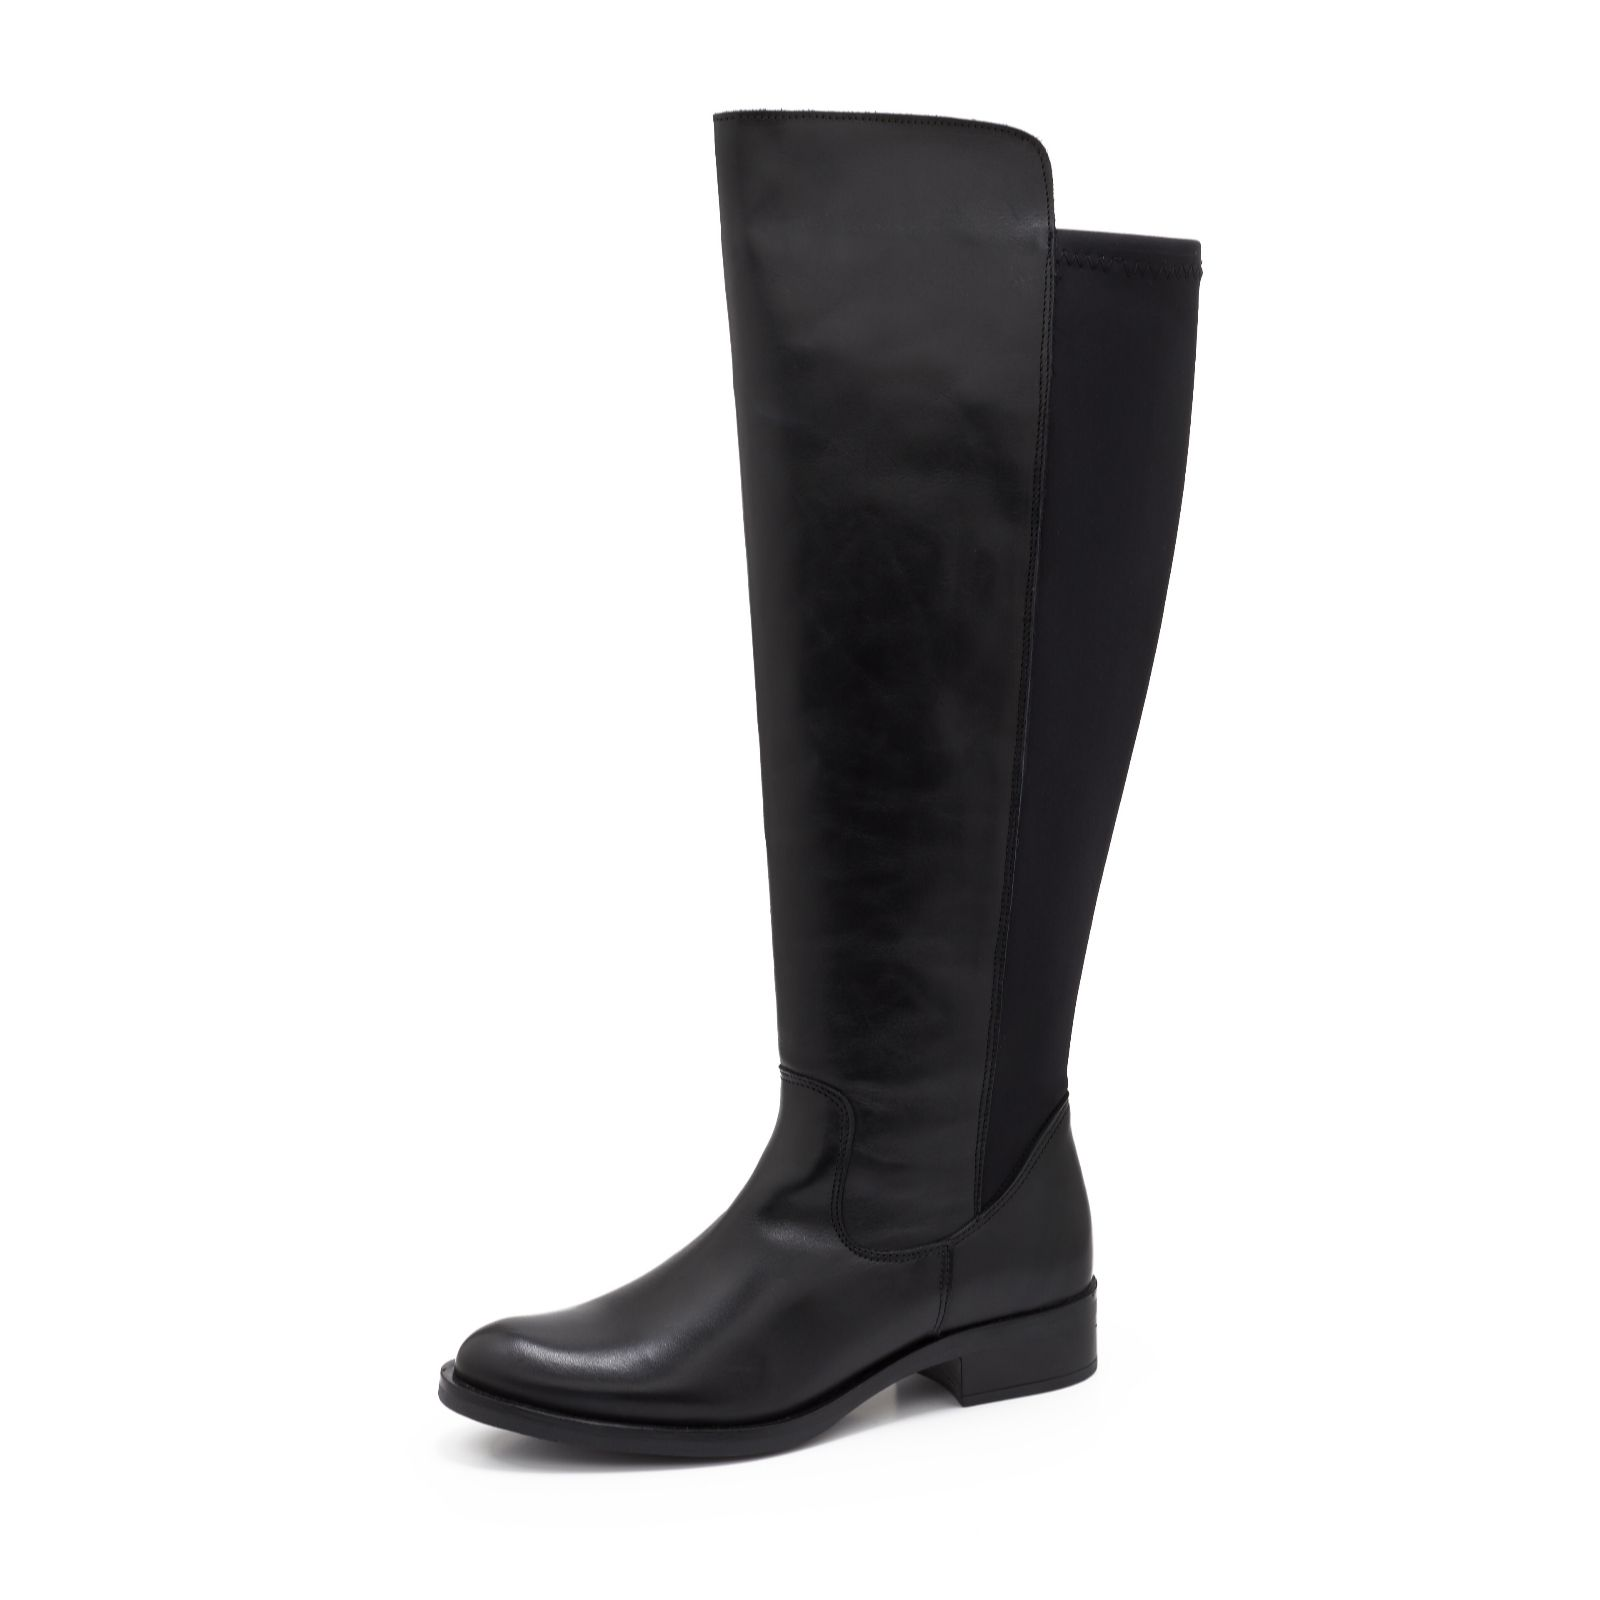 e0a4b7571657 Clarks Melissa Leather Knee High Boot with Elasticated Back Panel ...